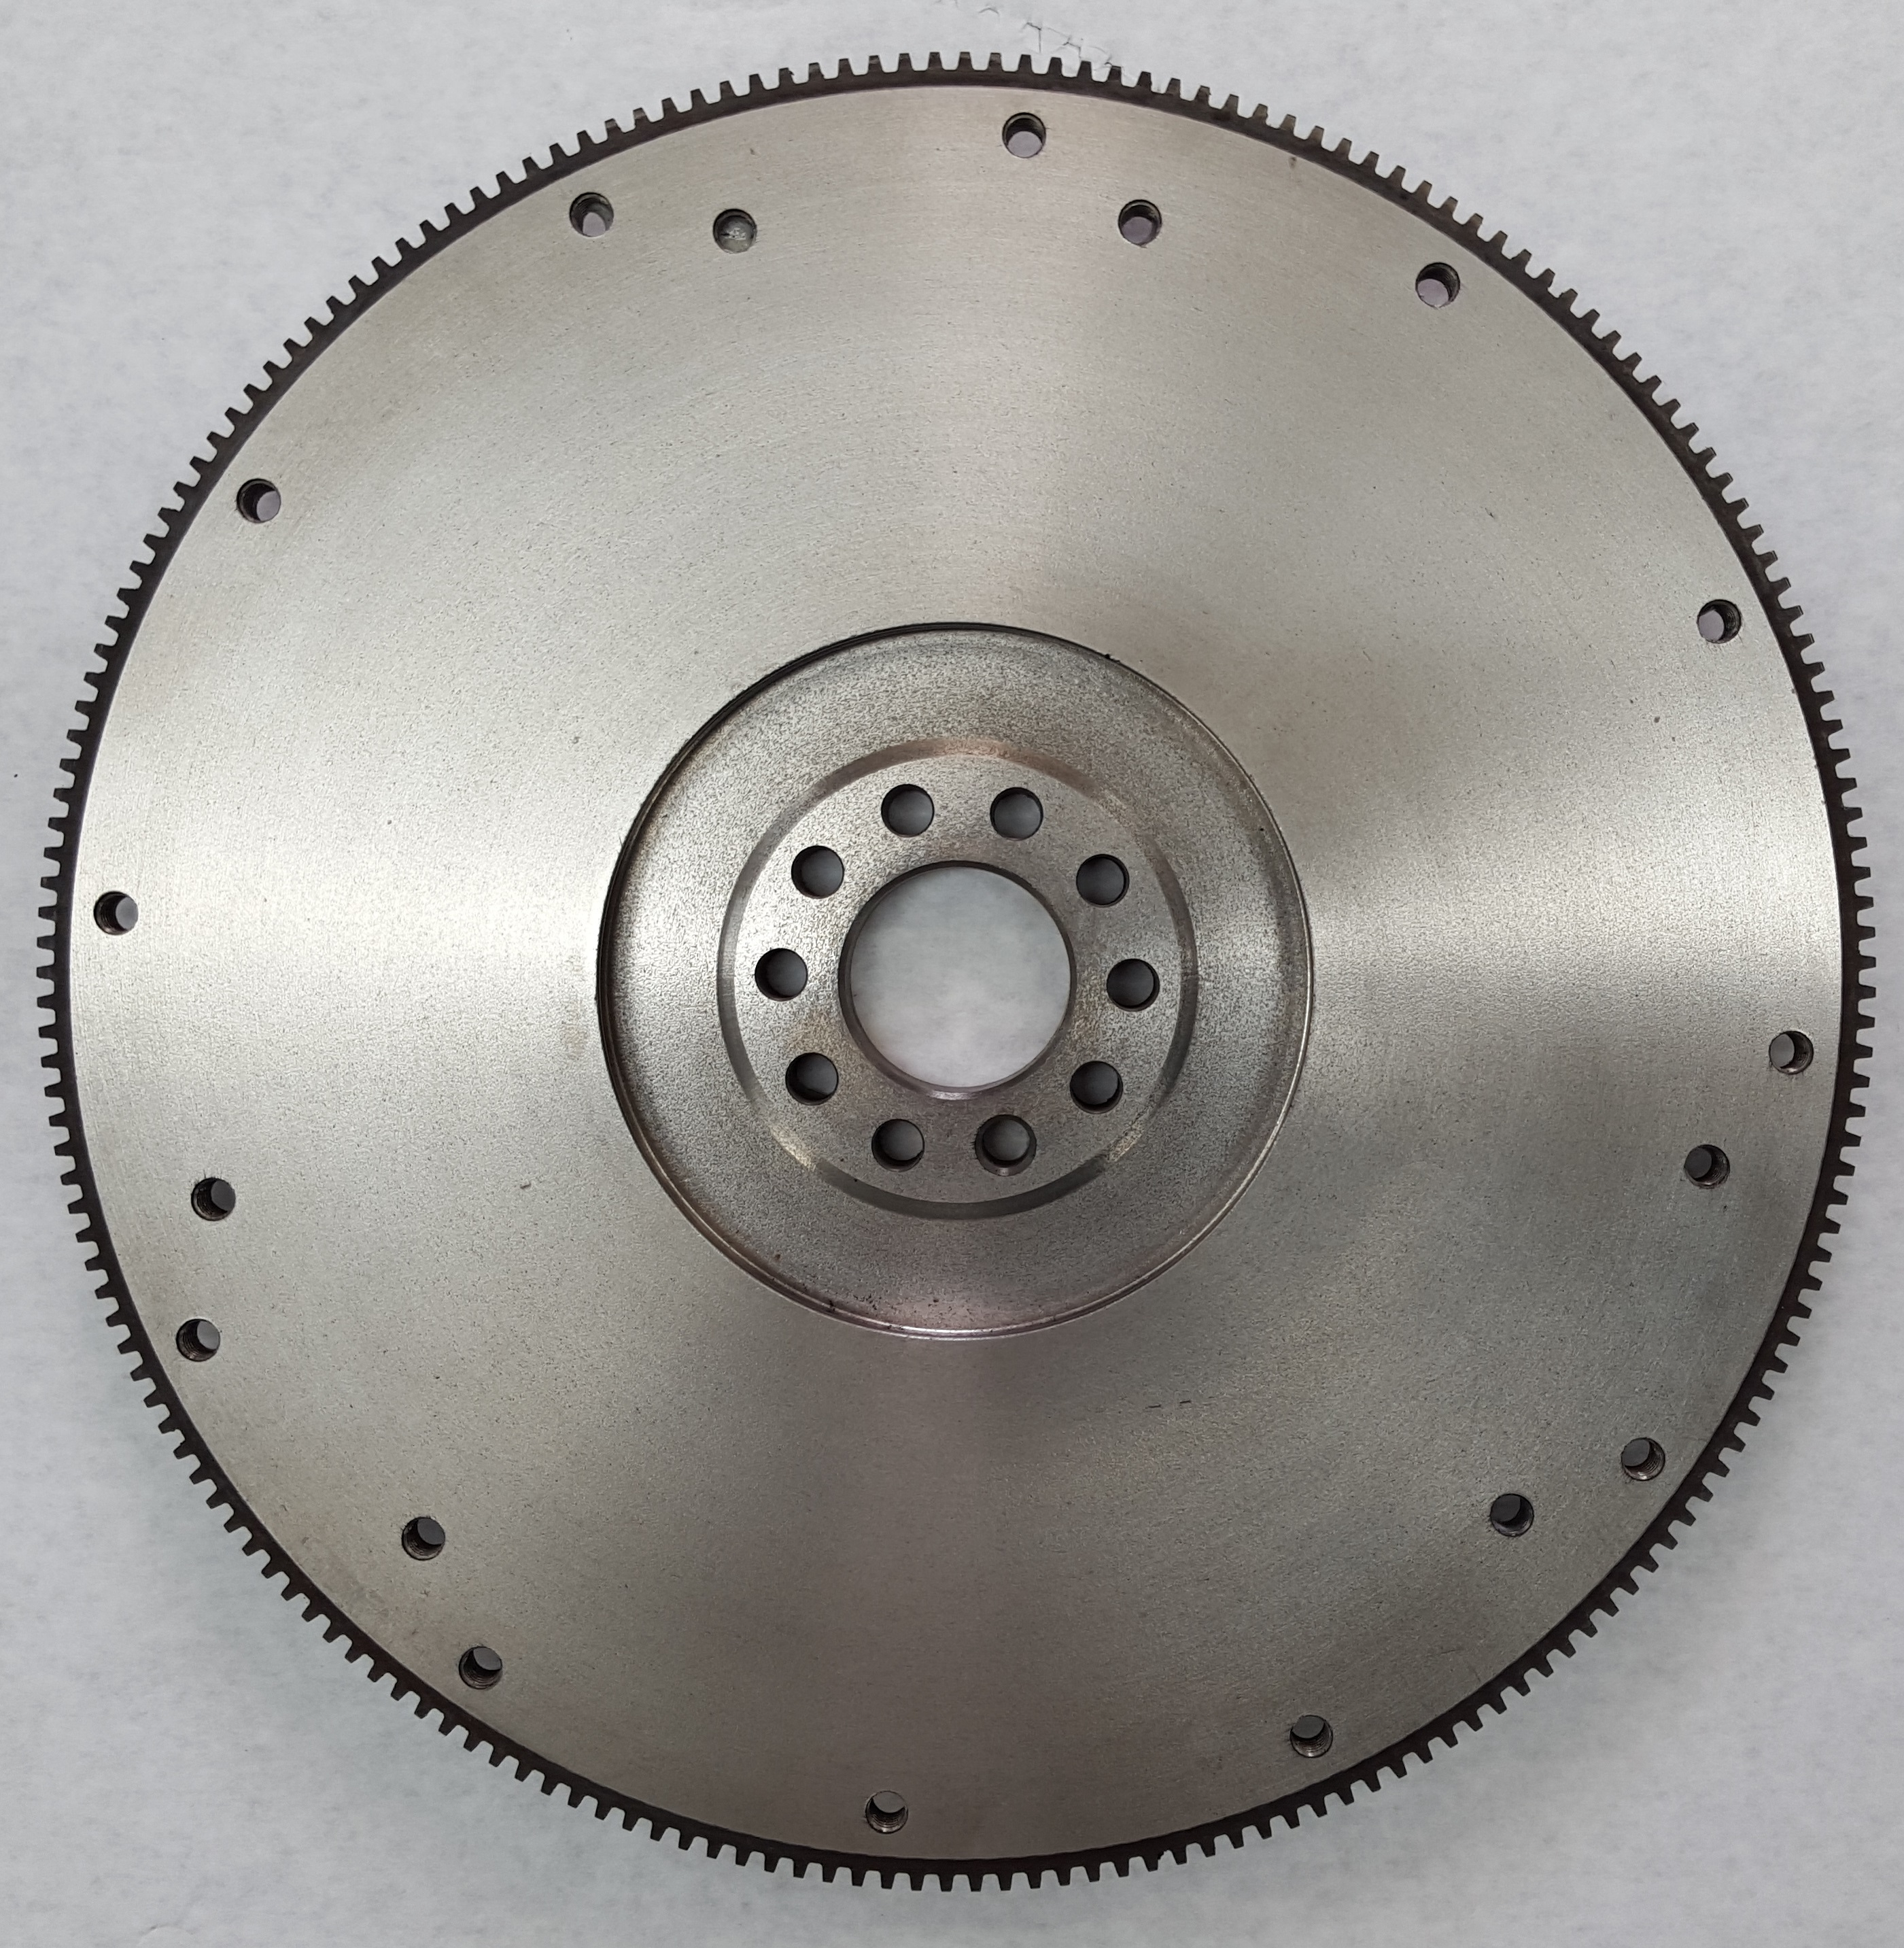 151115R31 Navistar Flywheel Front View-3 - Fixed